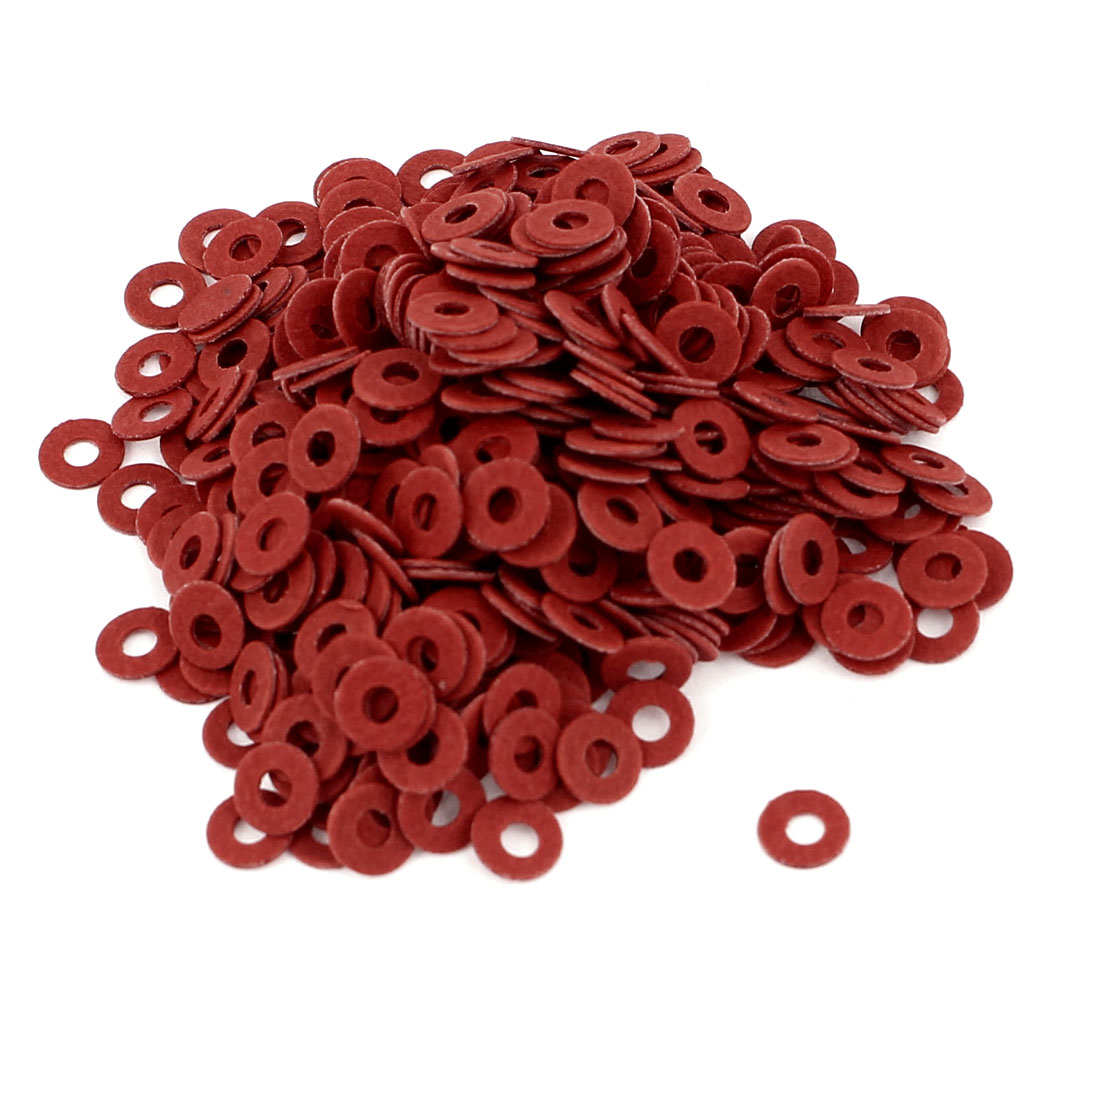 Fiber Flat Insulating Washer Ring 2mmx5mmx0.5mm 500Pcs Red for Screws